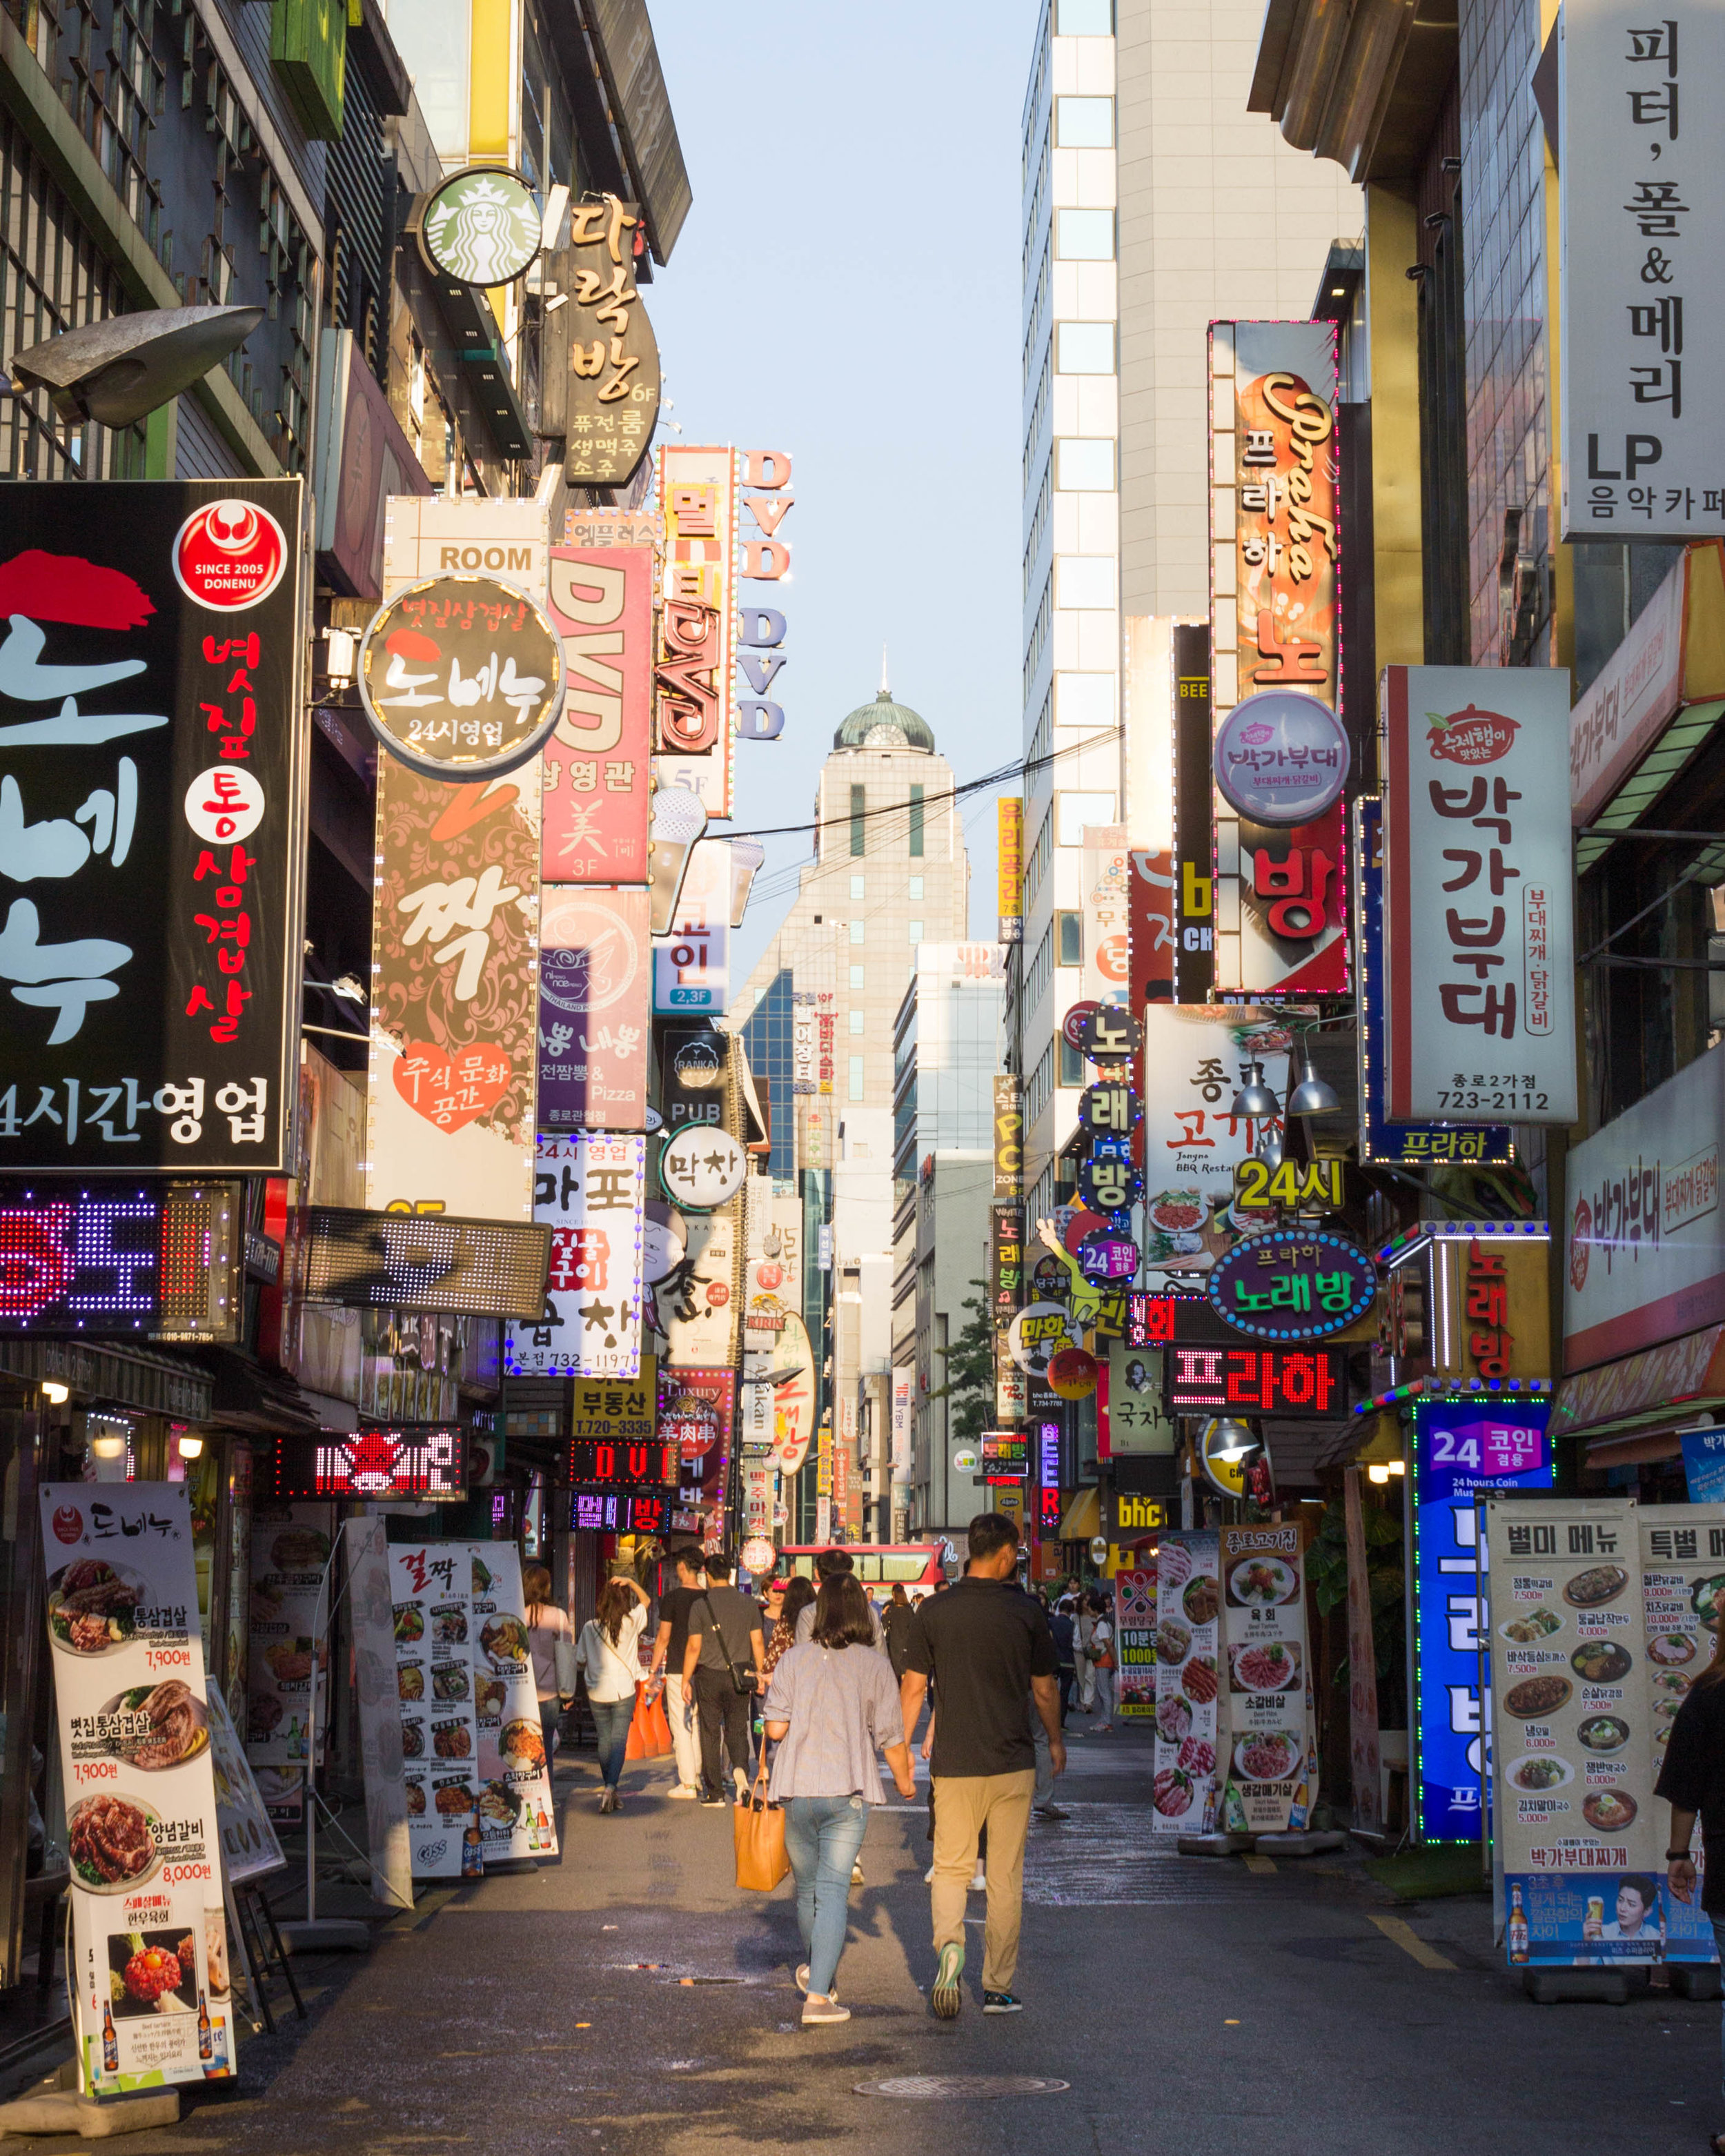 A busy street in the Jongno district